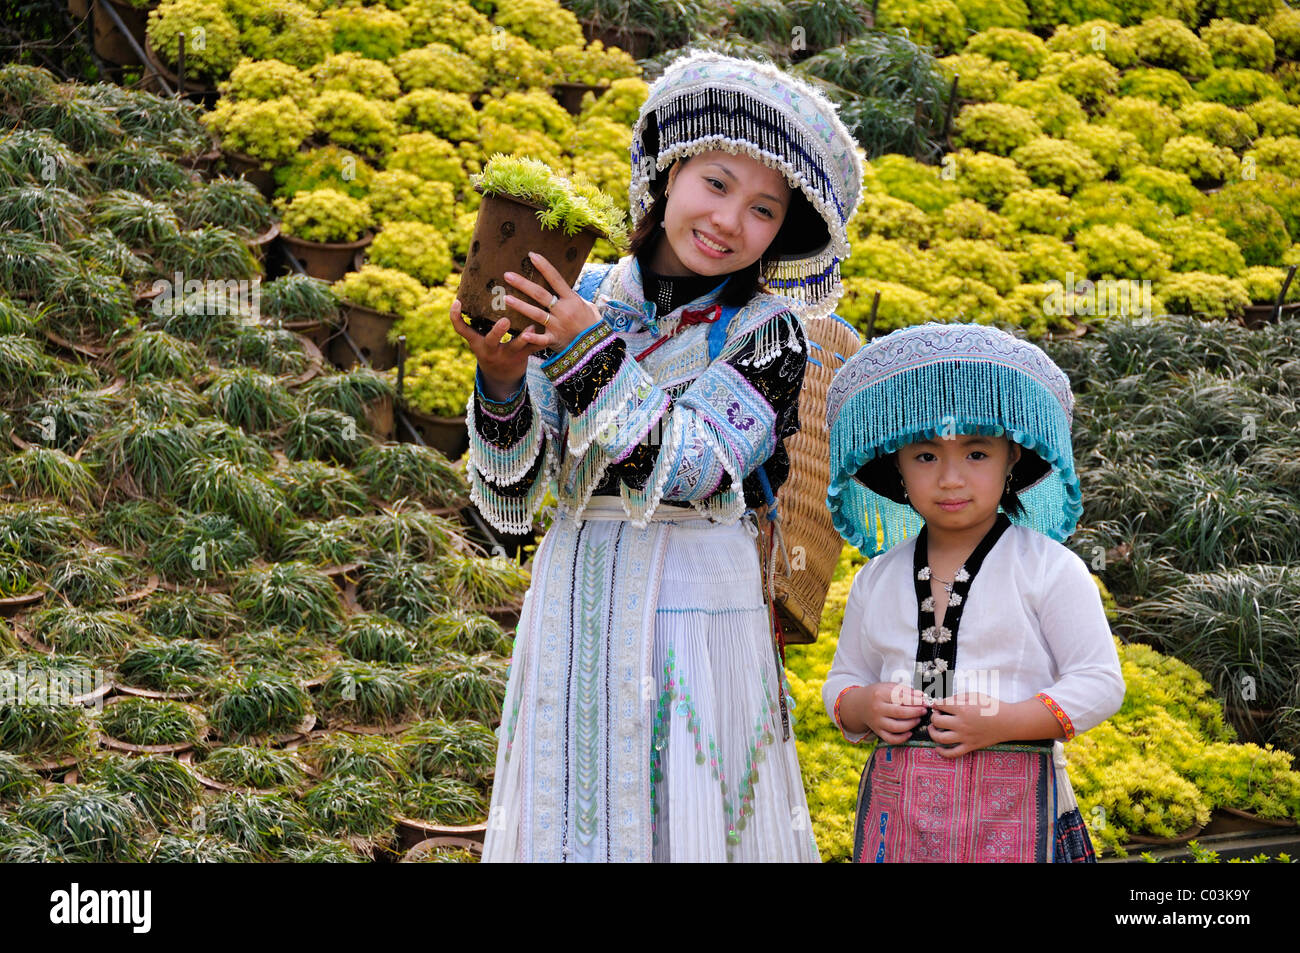 Les touristes portant un costume traditionnel, SAPA, Vietnam, Asie Photo Stock